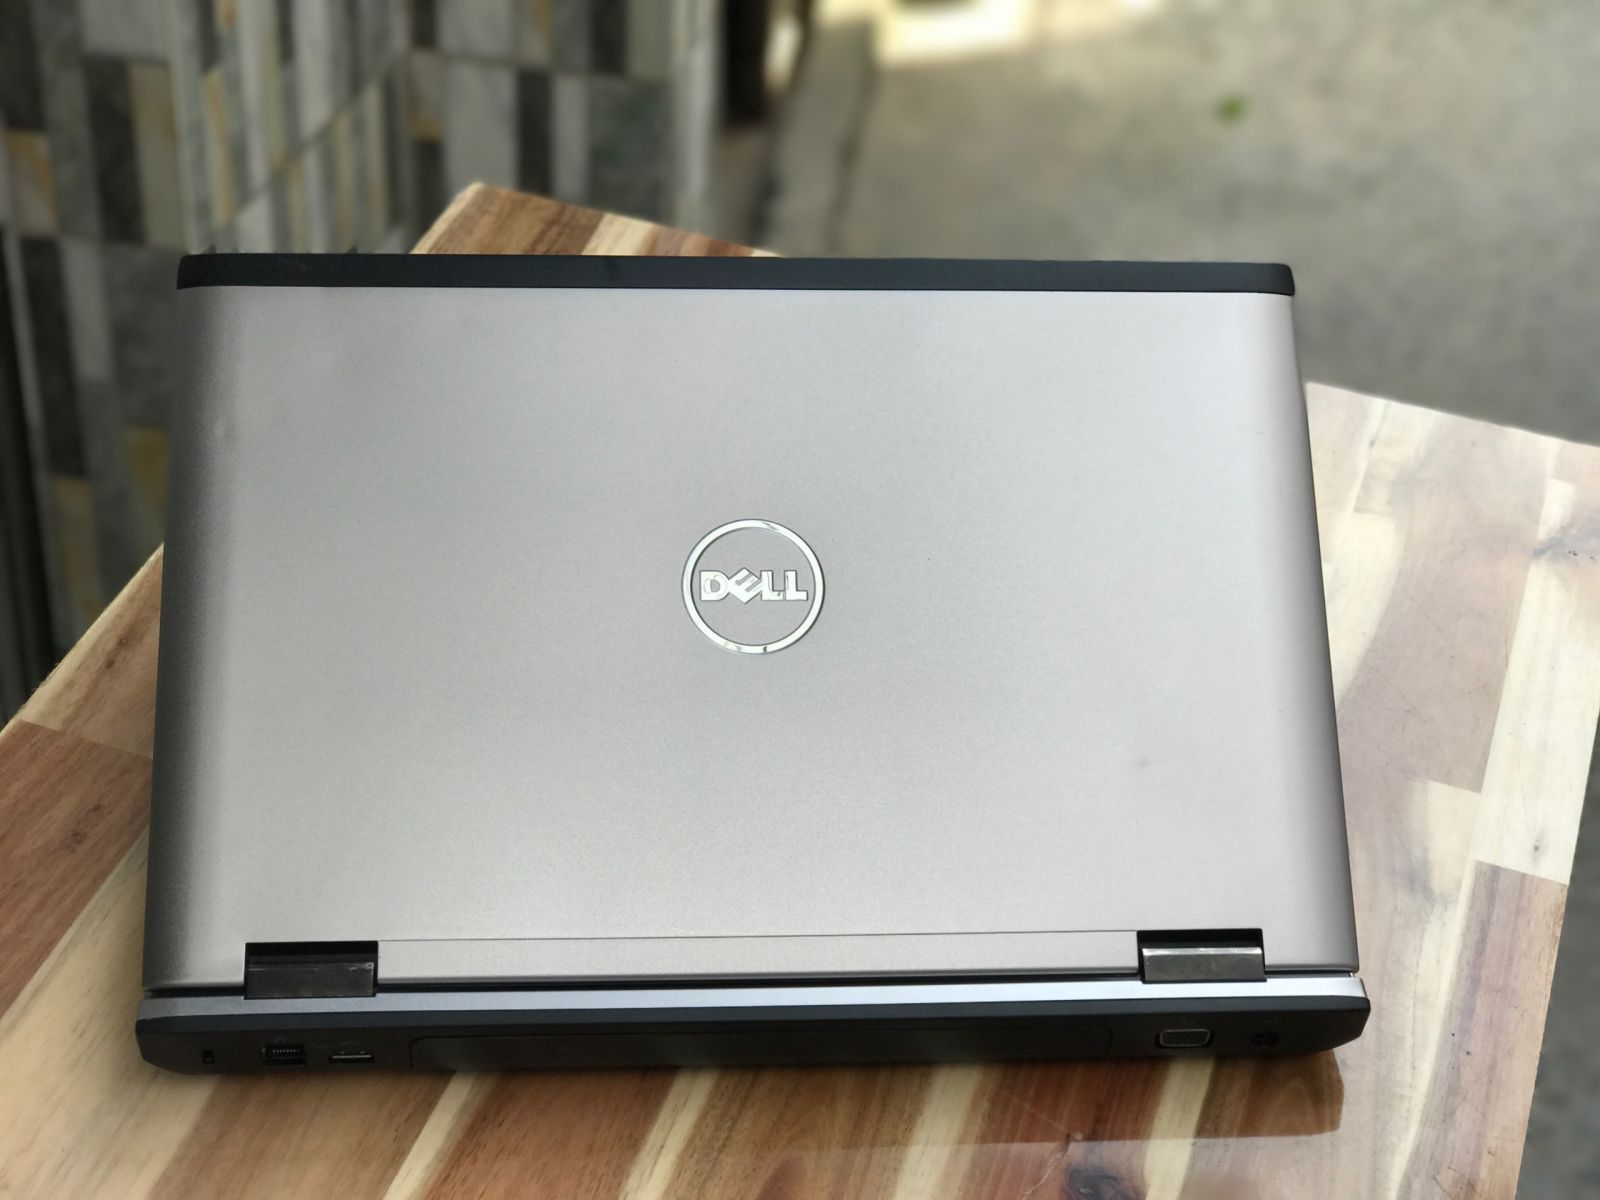 Laptop Dell Vostro 3550 / i7 Sandy Bridge/ 8G/ SSD128-500G/ 15in/ Vga rời/ Win 10/ Giá rẻ4